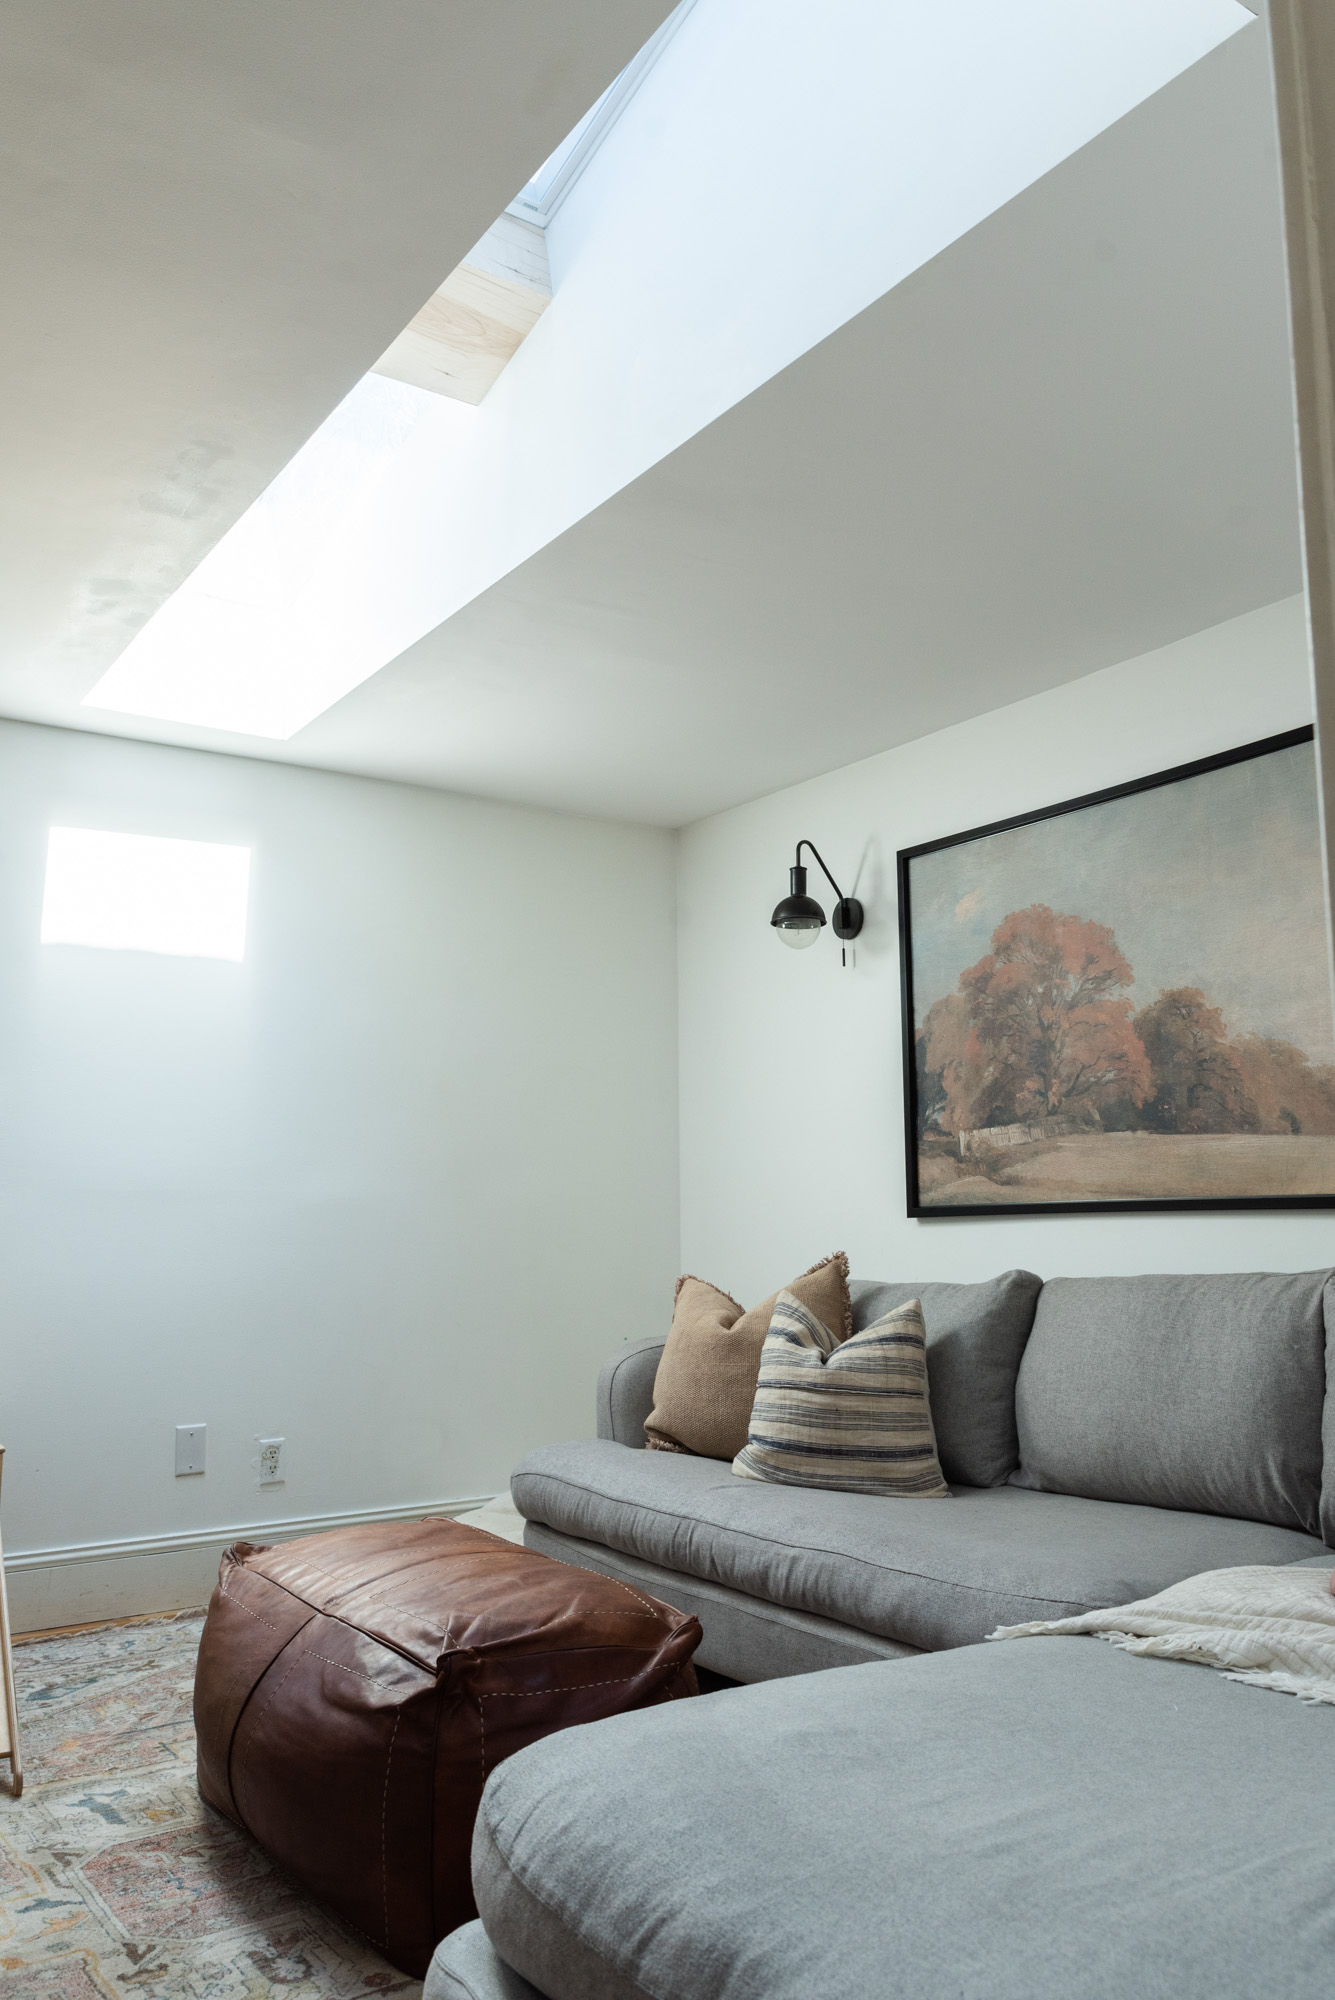 Getting More Light With Velux | The Wild Decoelis | skylights in family room with grey sectional and leather ottoman